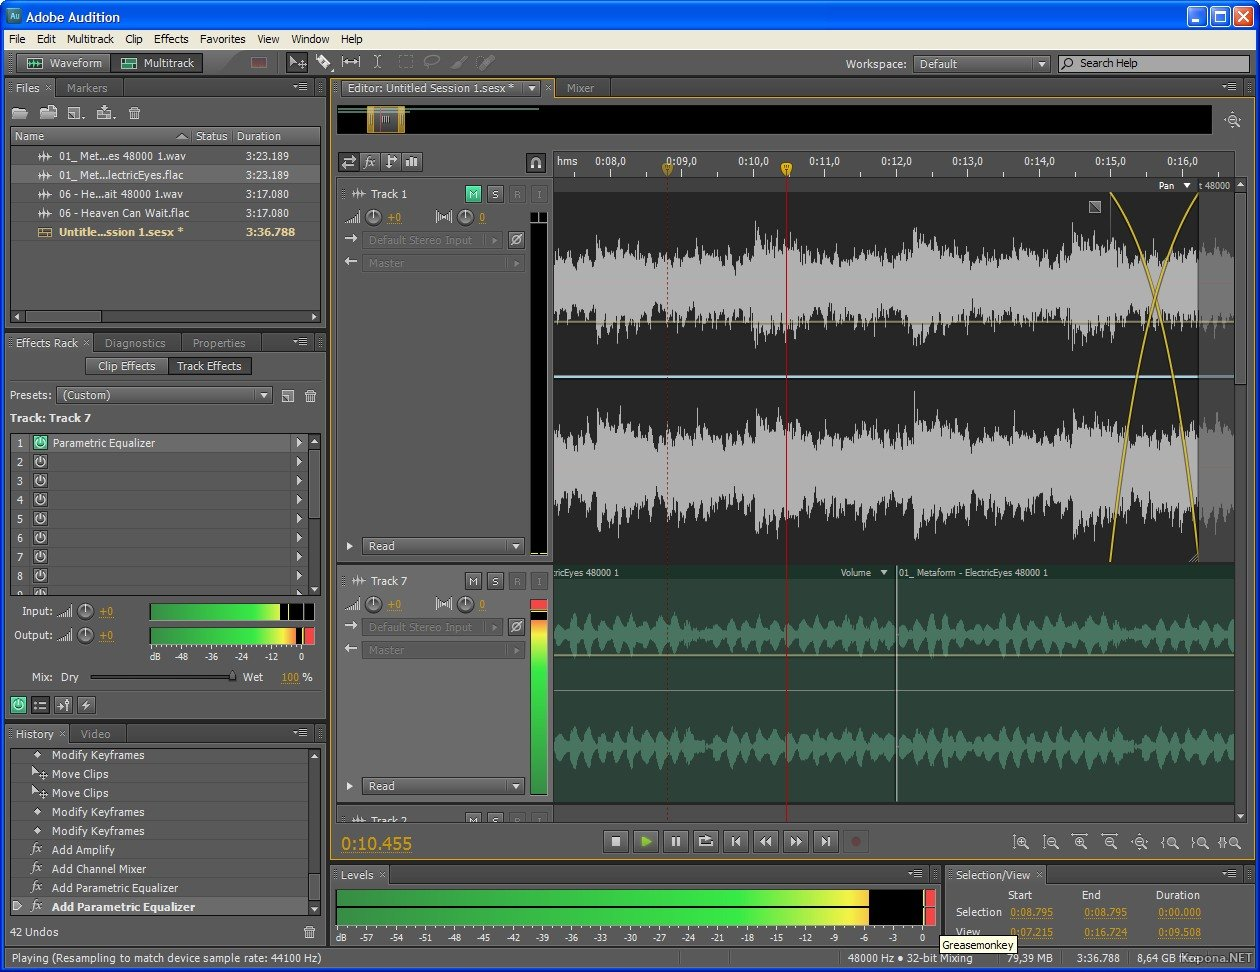 Adobe audition cs5 5 crack - free download - (21 files)